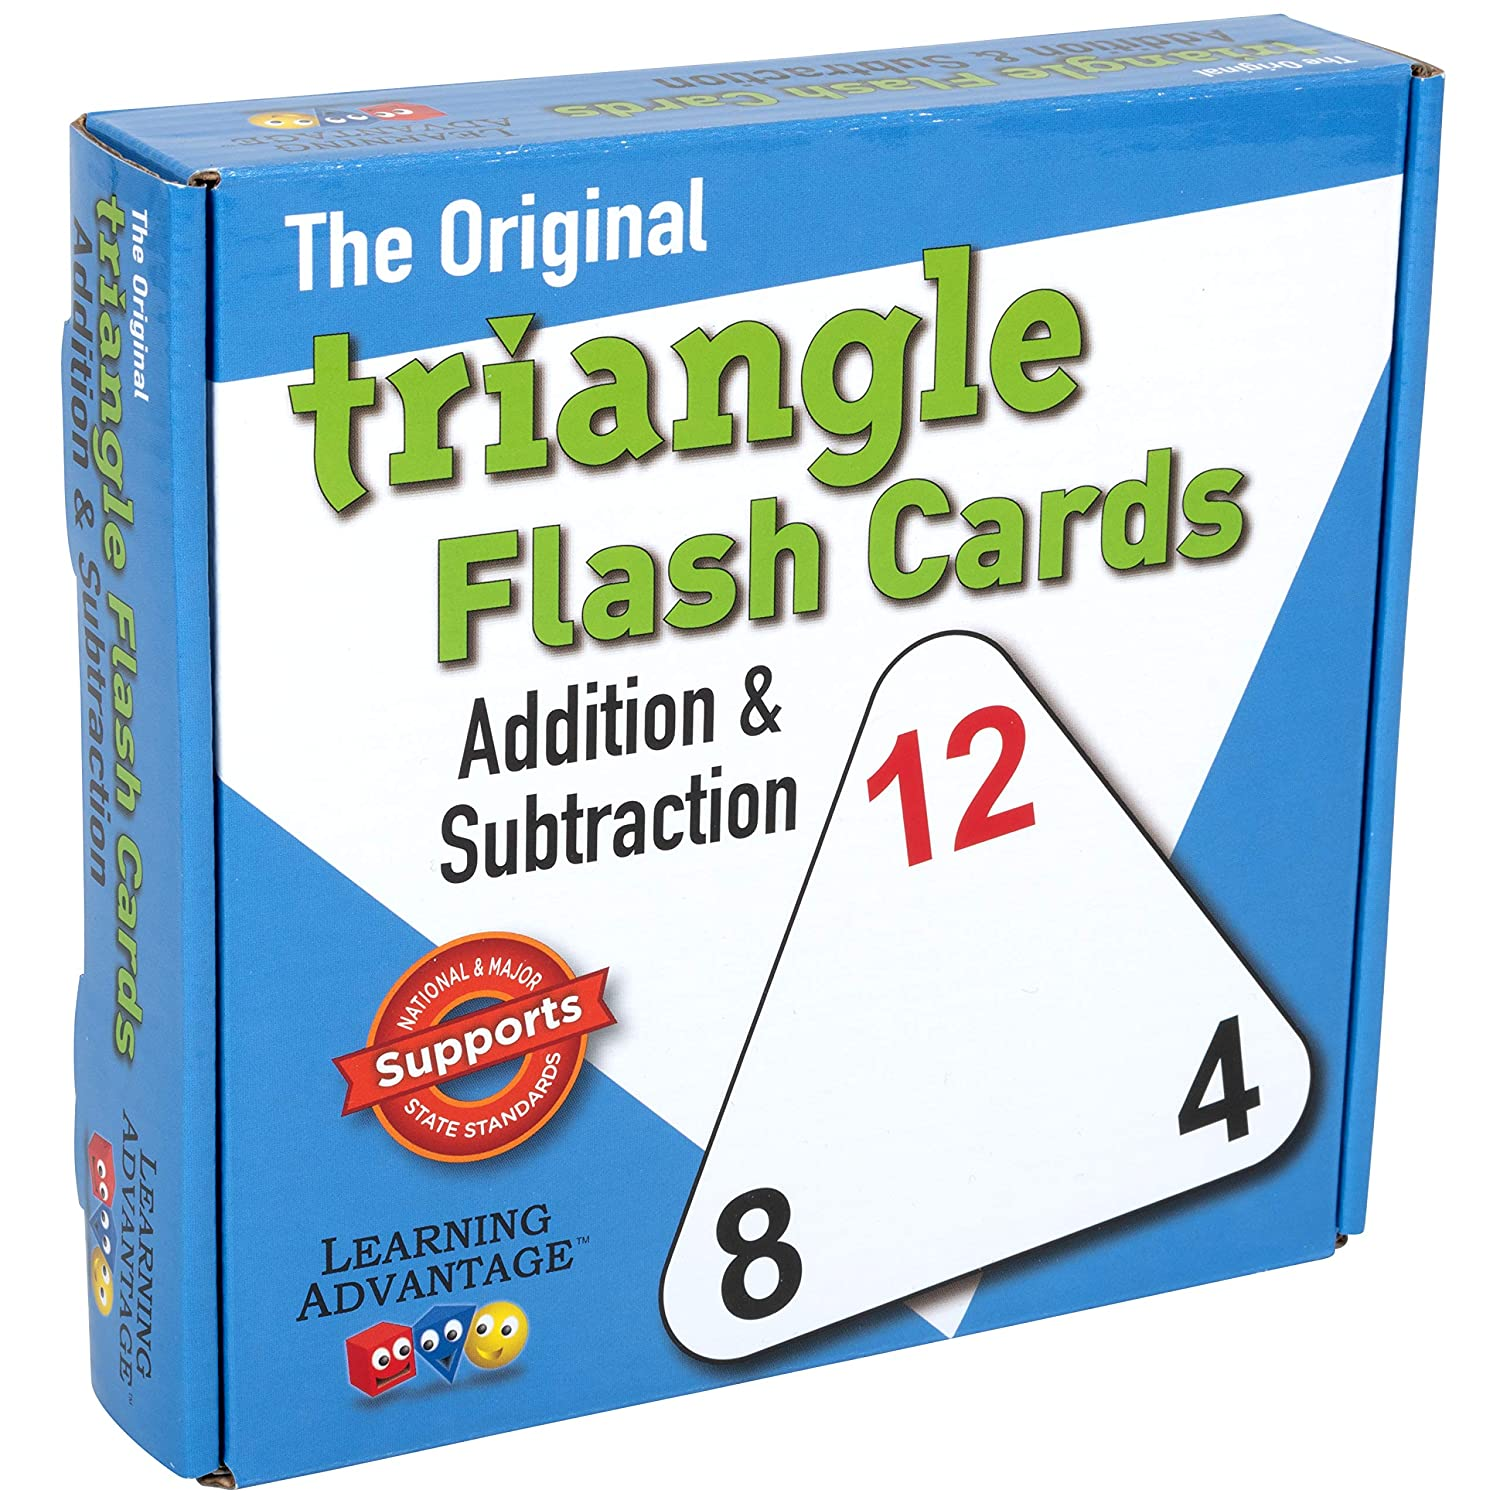 LEARNING ADVANTAGE Original Triangle Flash Cards - Addition and Subtraction - Set of 20 - in-Home Learning - Math Flash Cards